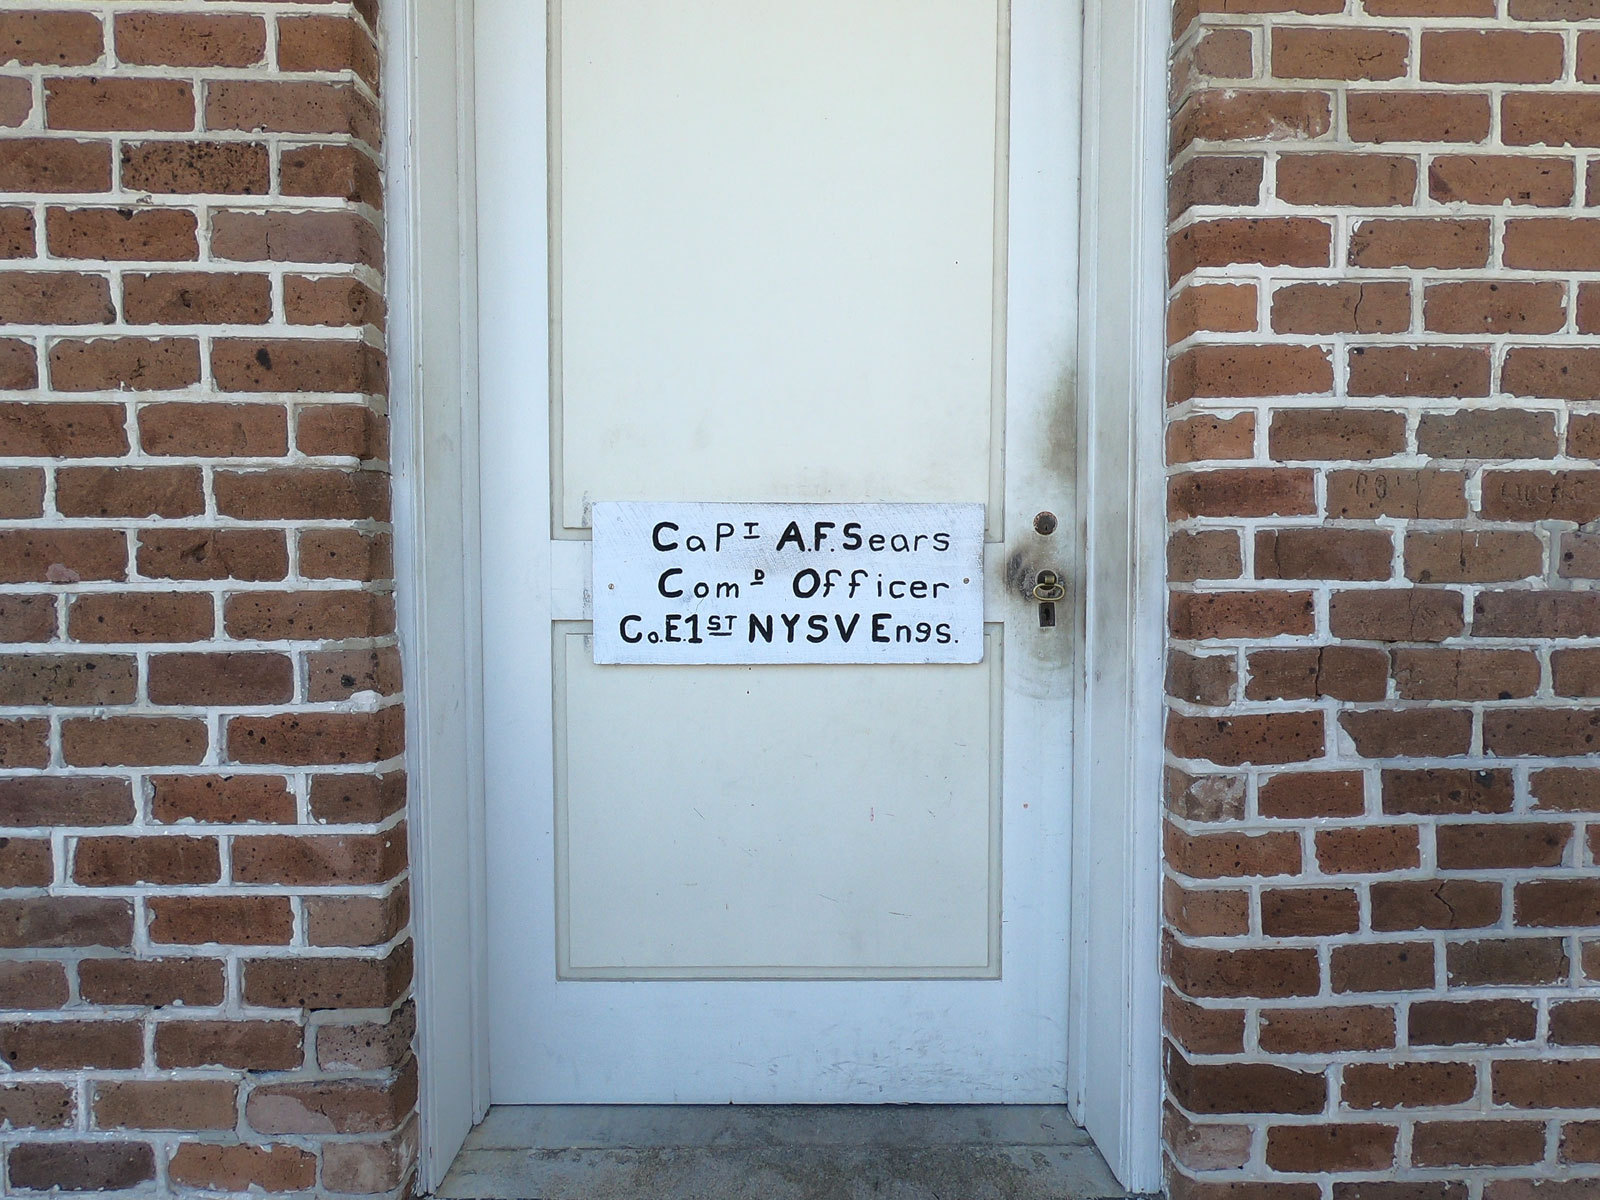 Beautiful typography on commander's barrack door in historic Fort Clinch, Florida